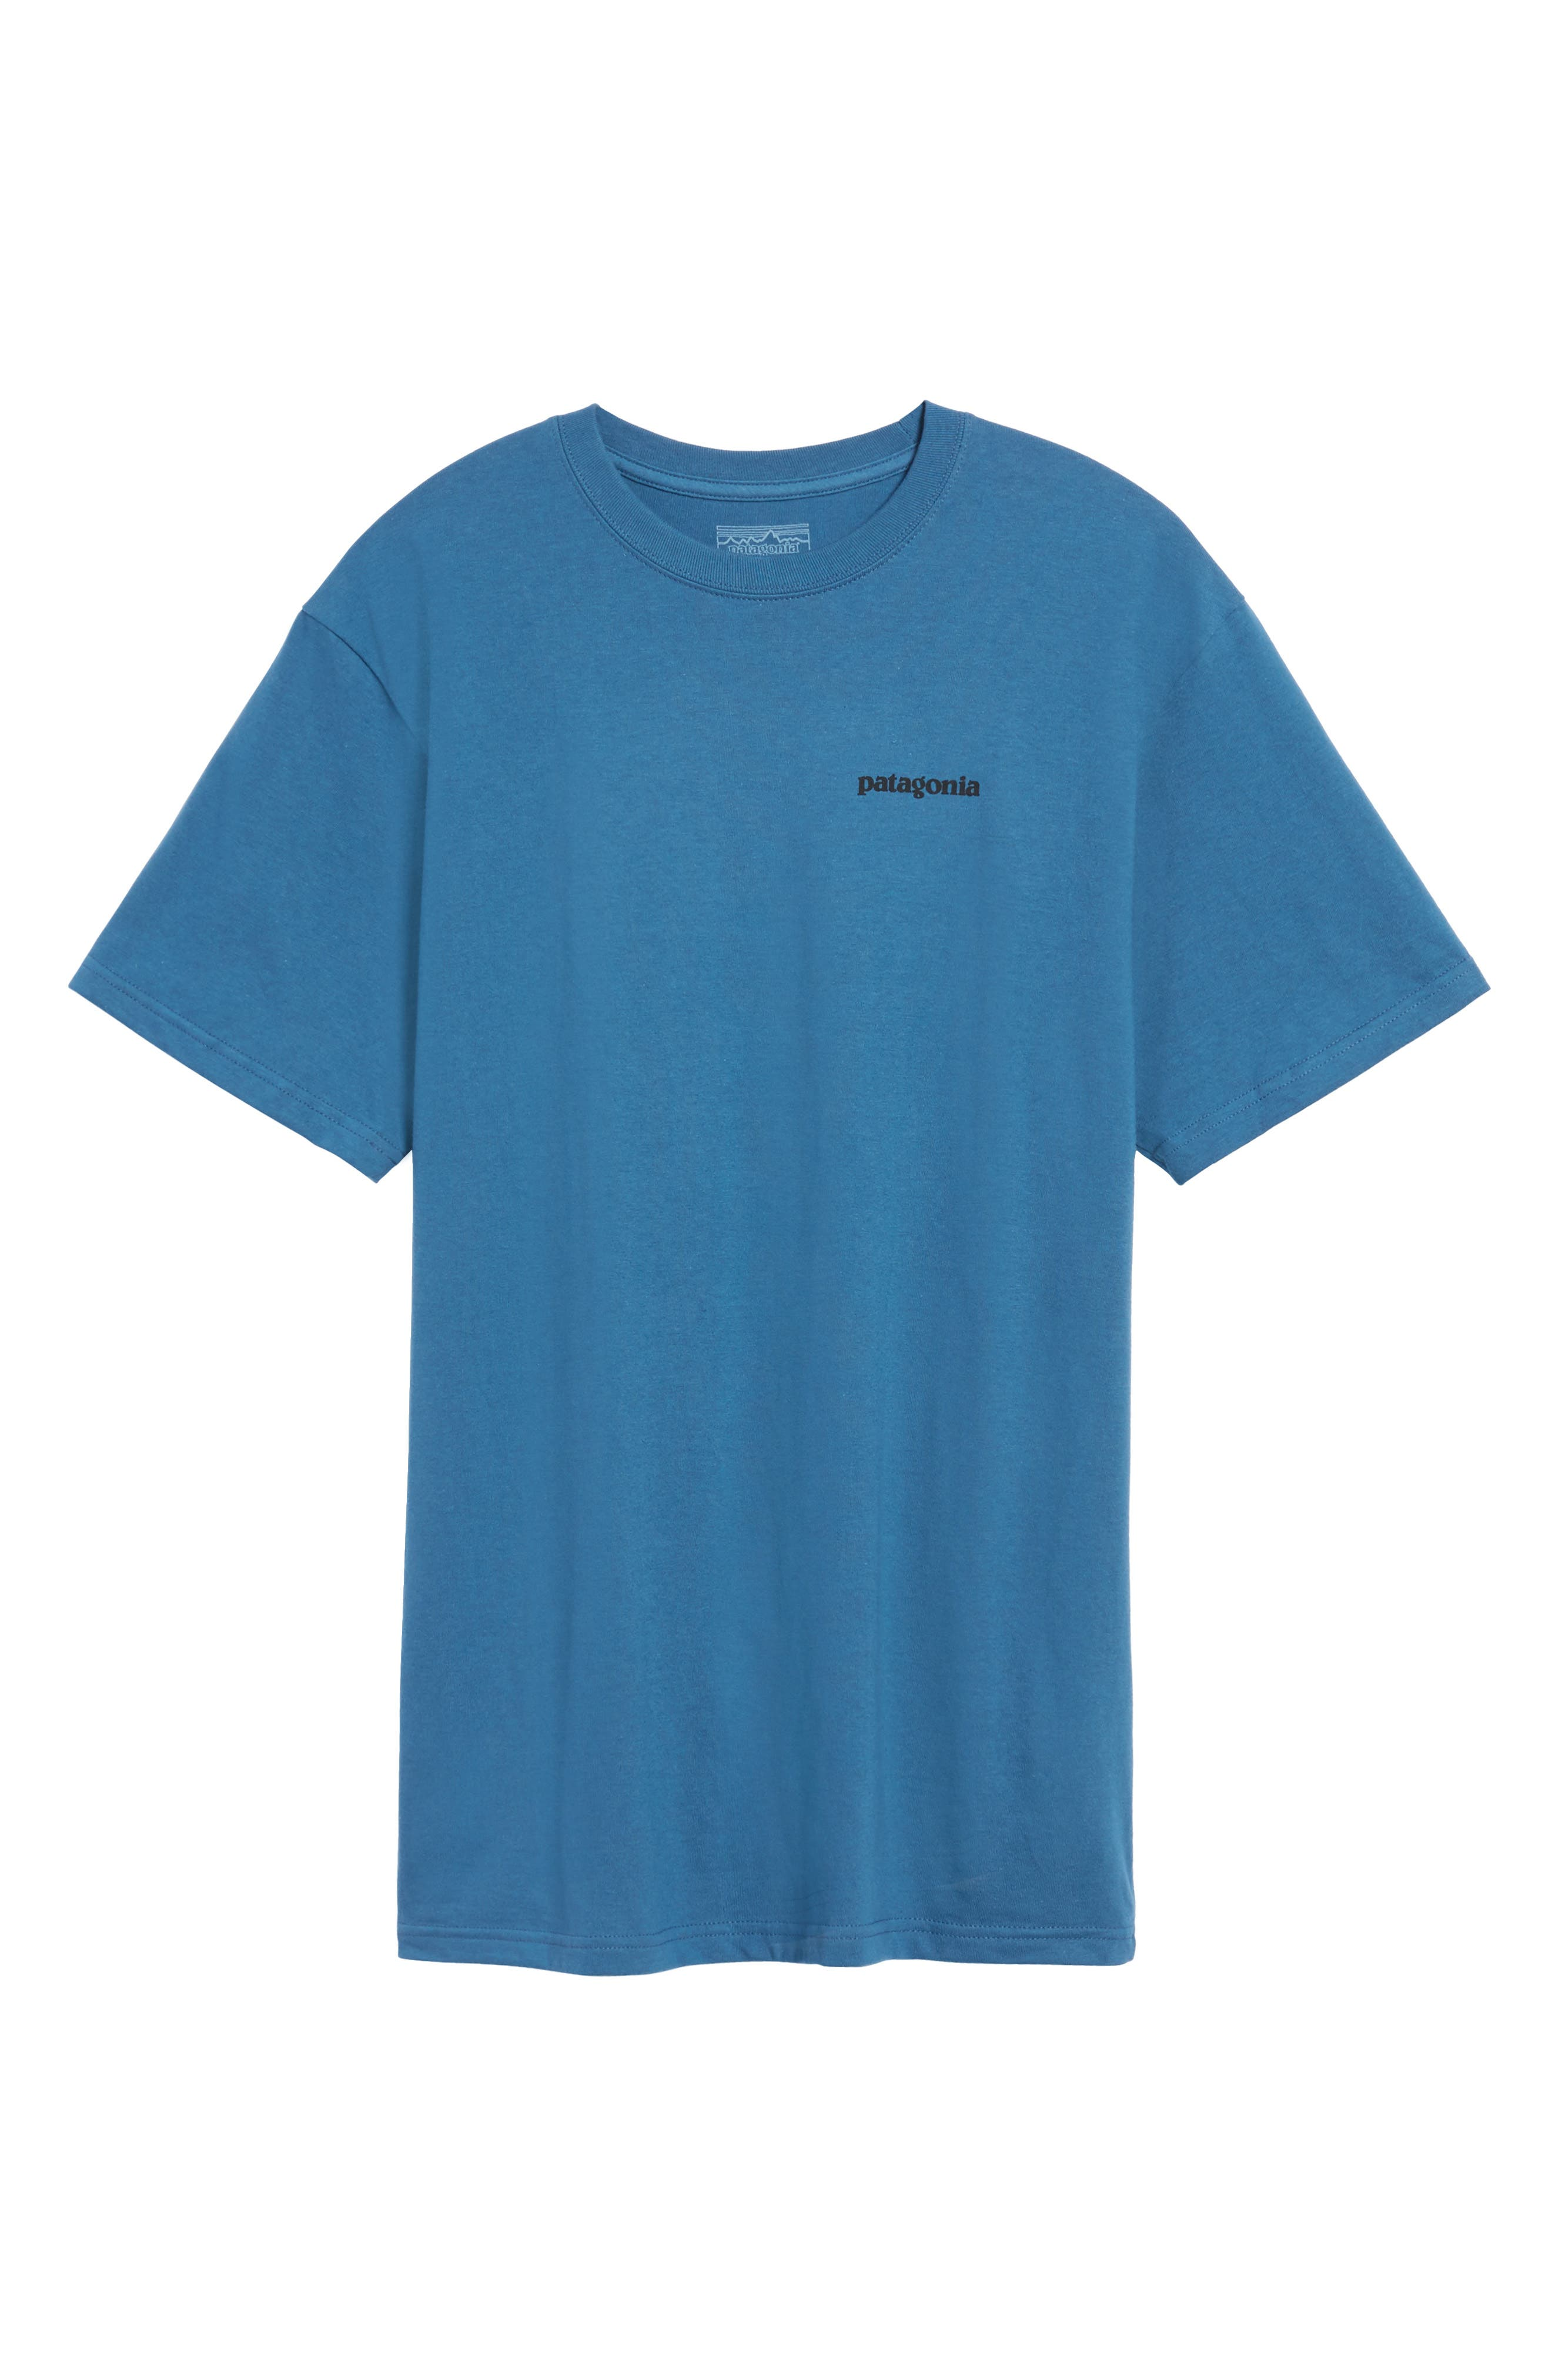 'P-6 Logo' Organic Cotton T-Shirt,                             Alternate thumbnail 7, color,                             Glass Blue